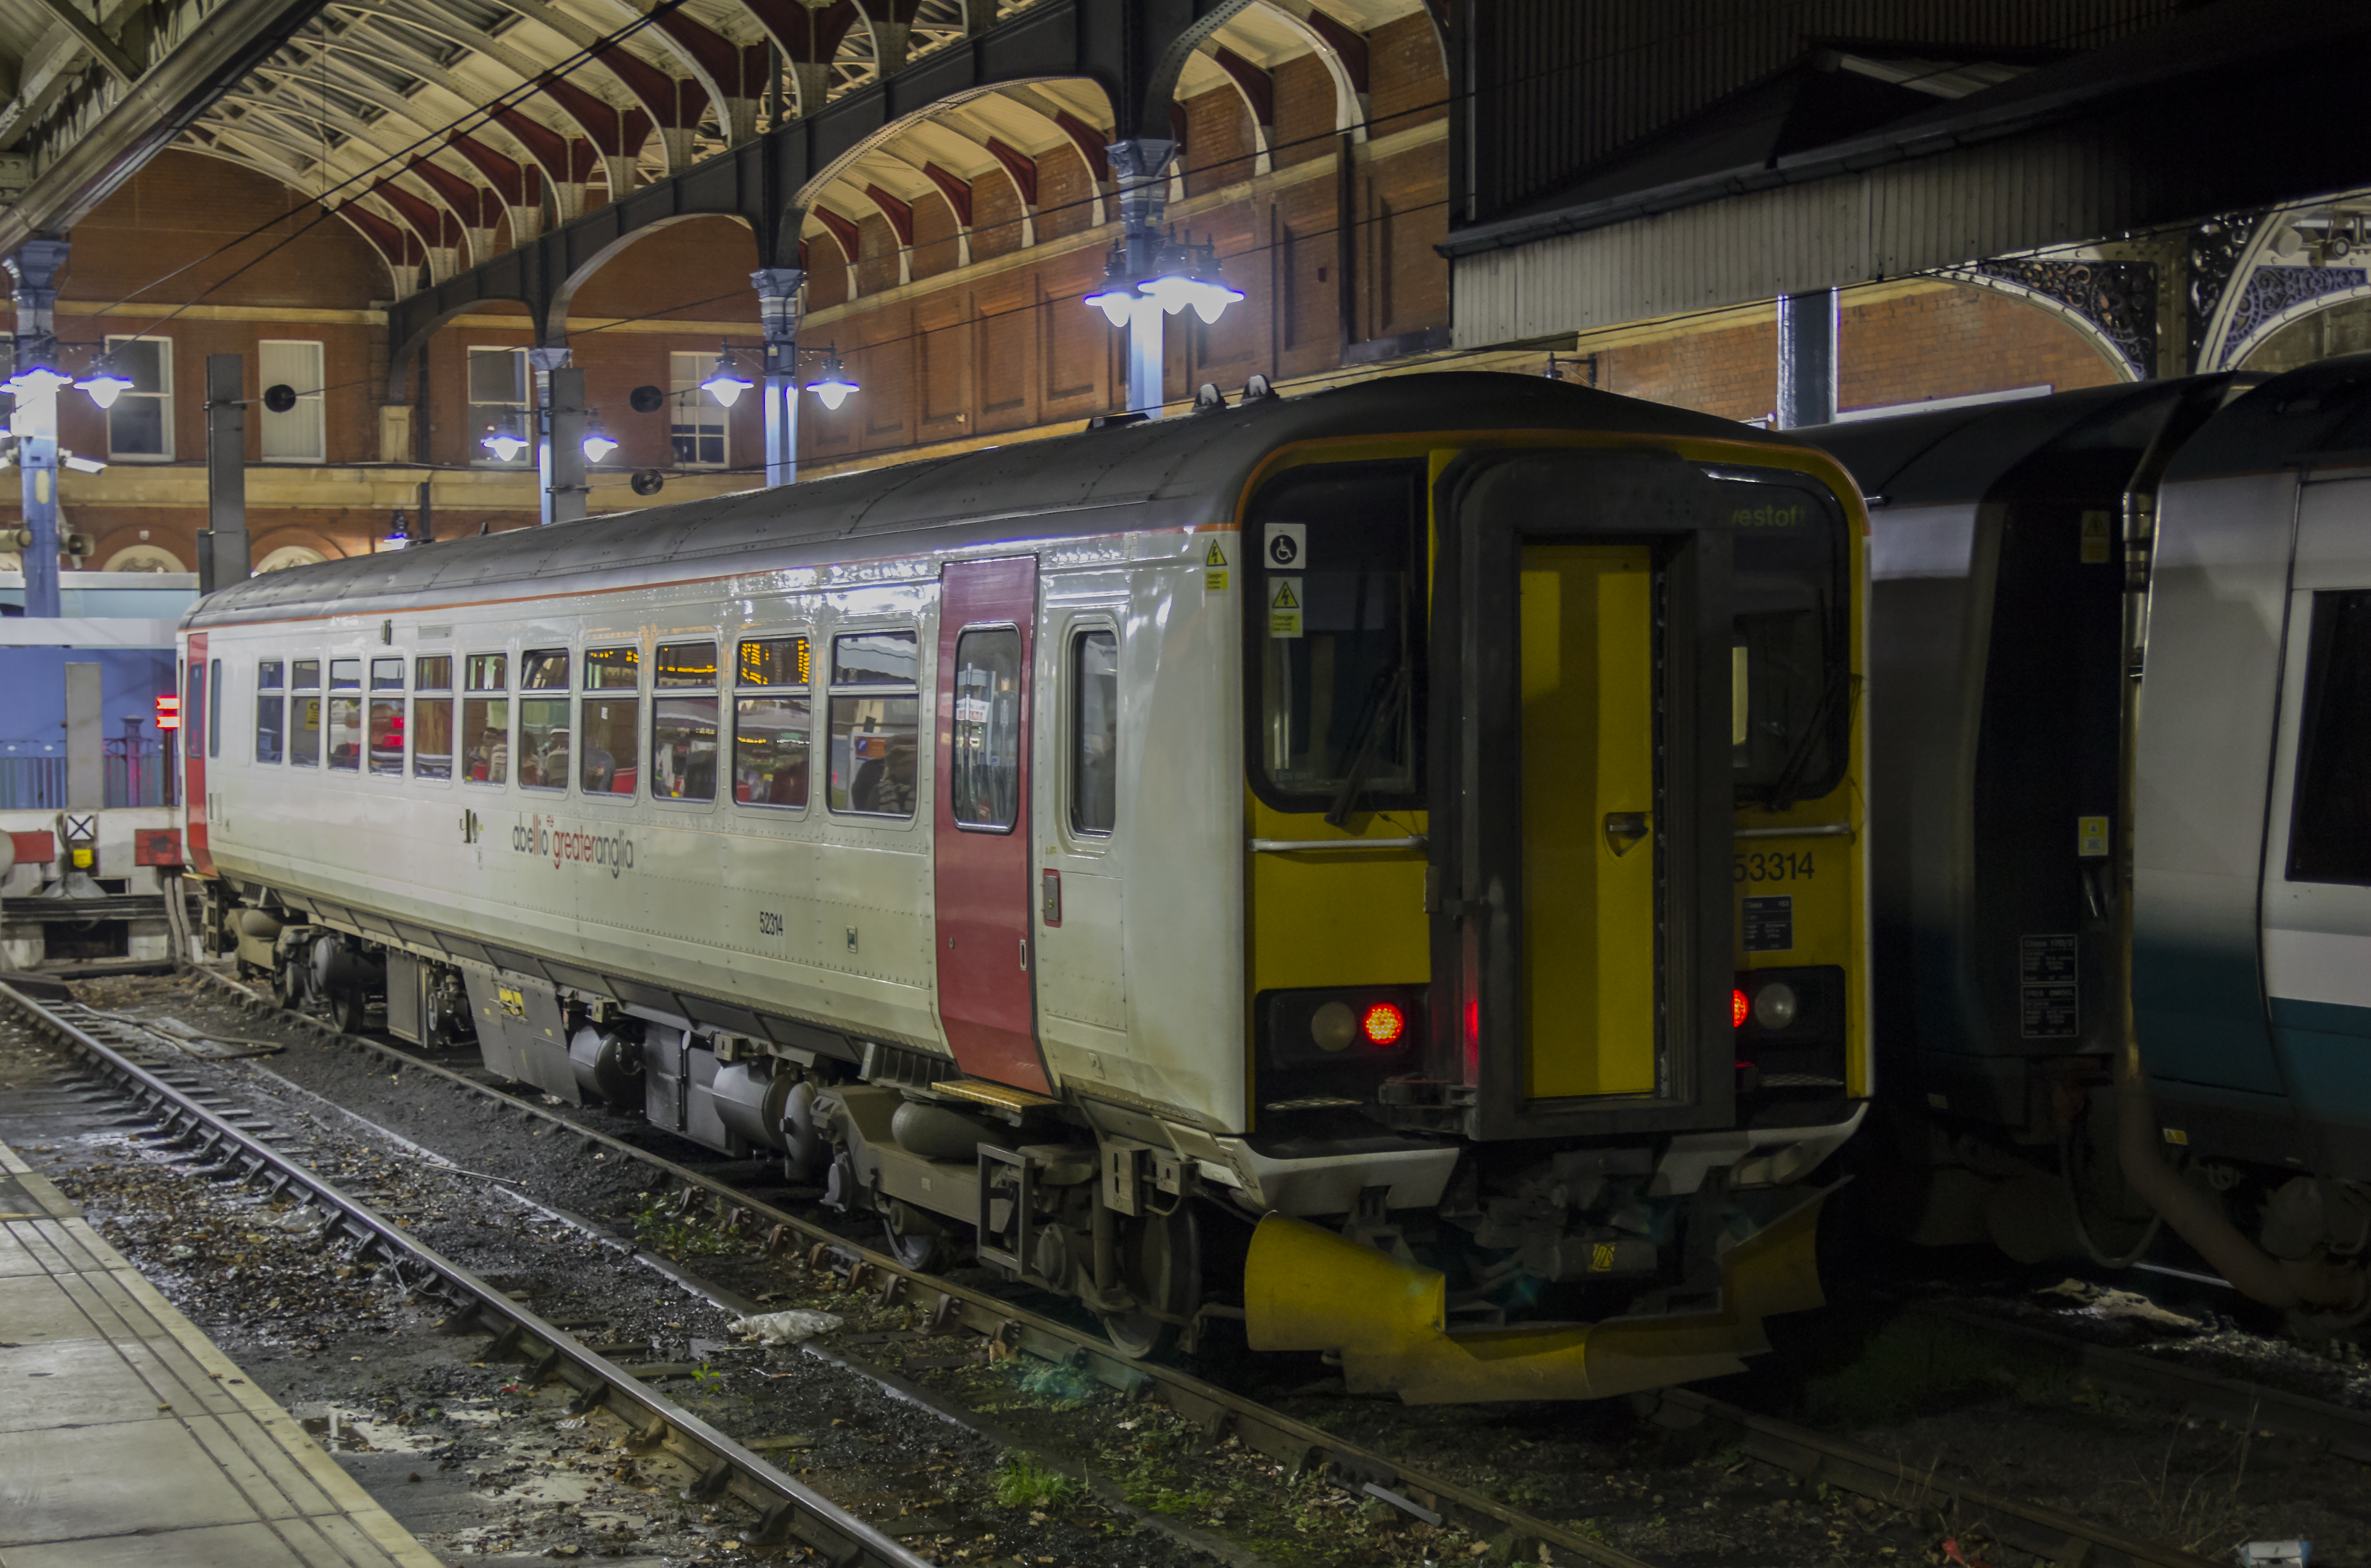 File:153314 at Norwich (31580623805).jpg